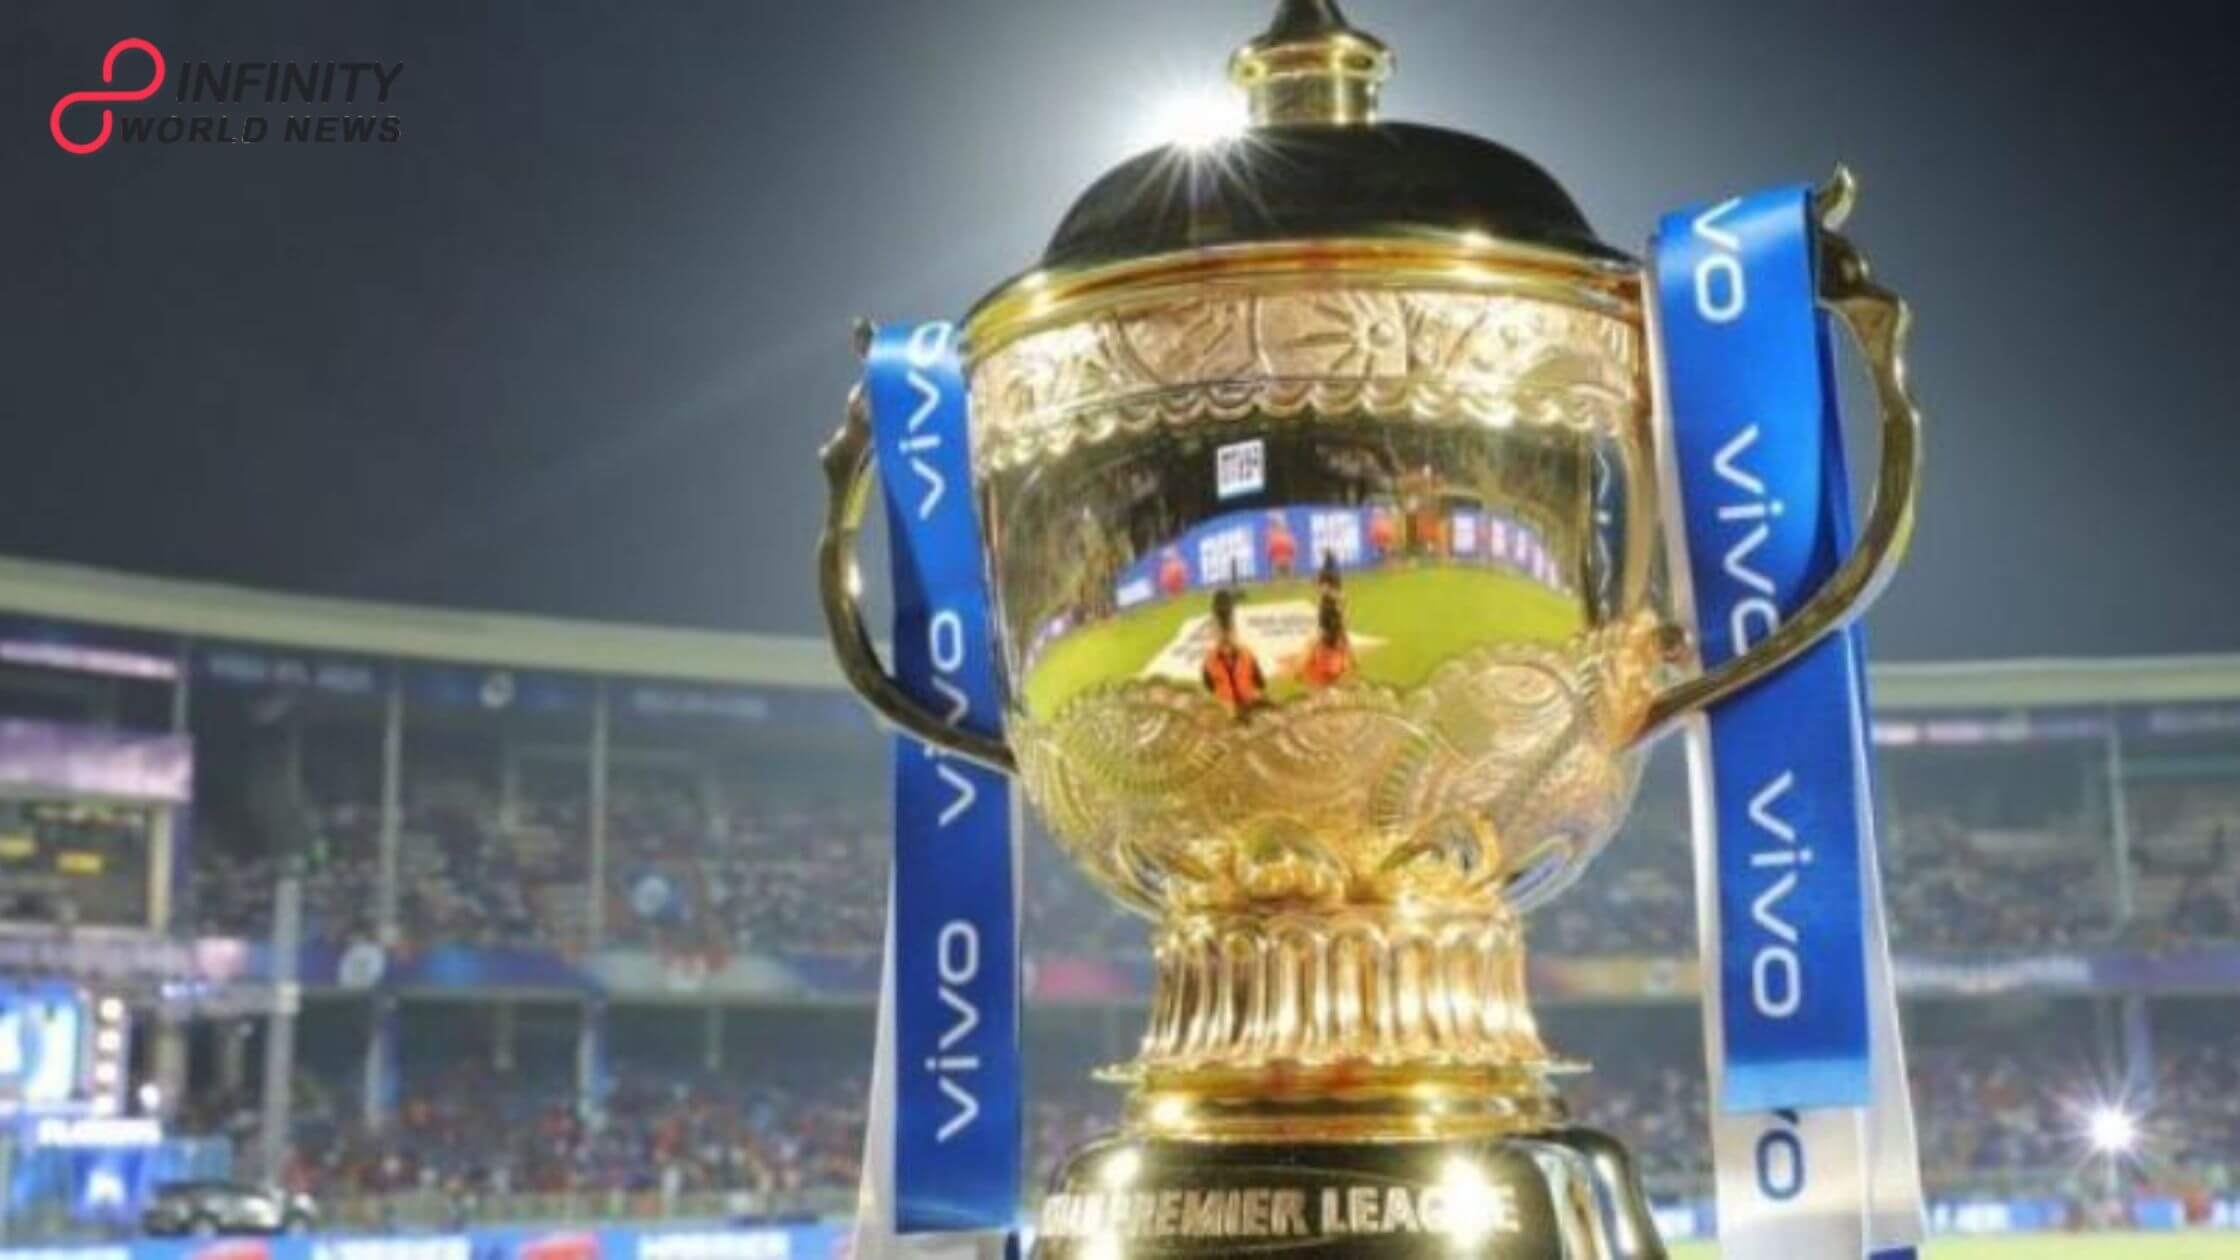 IPL 2020 publicizing income: Star India hopes to dodge COVID-19 blues